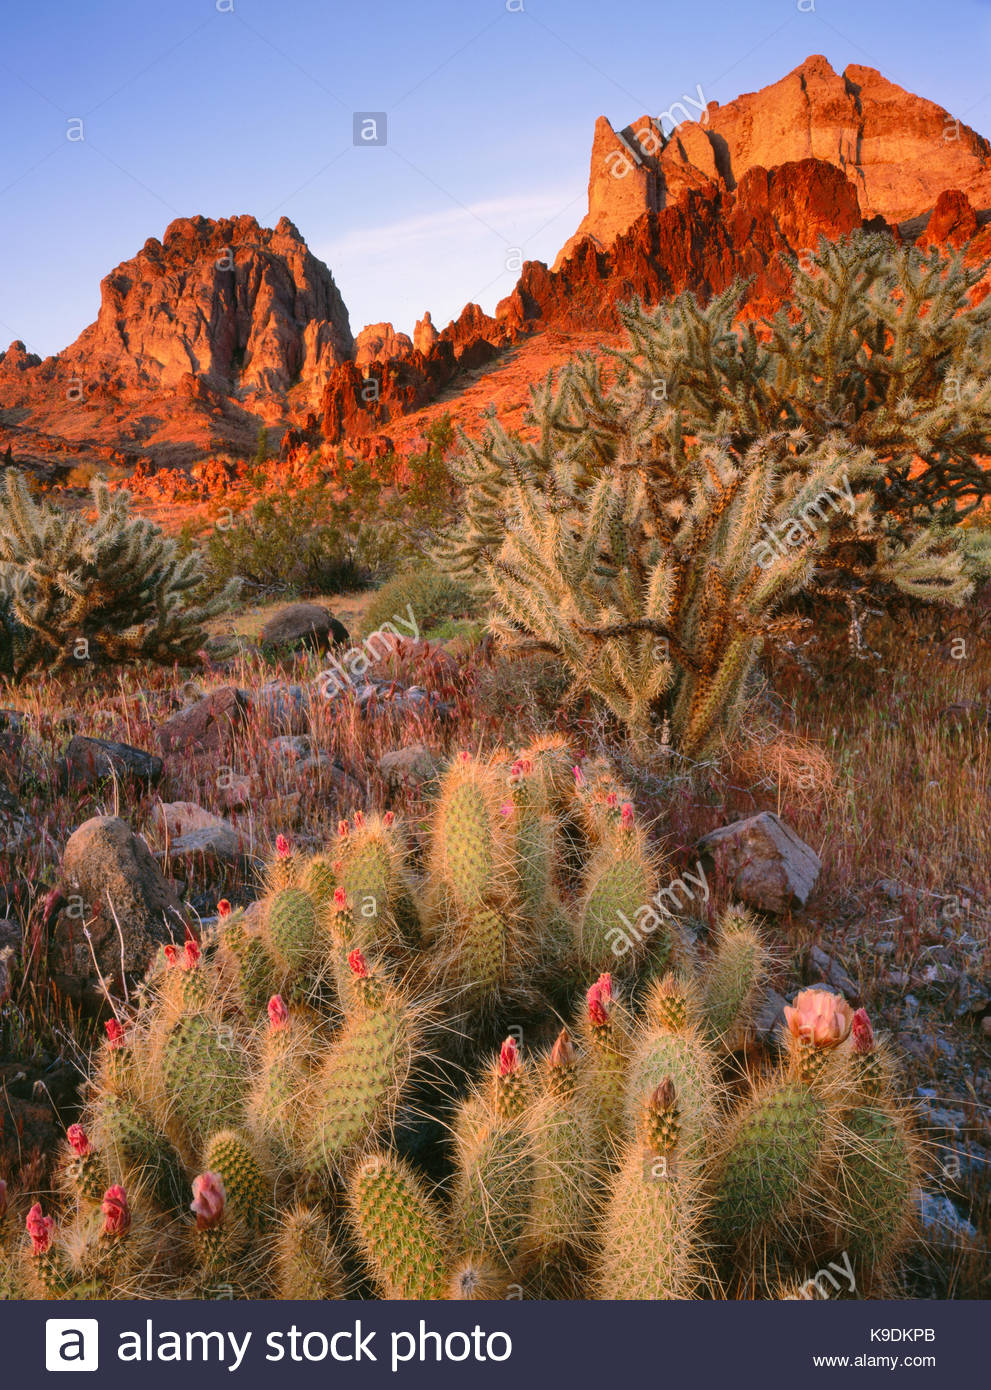 Grizzly Bear Cactus and the Turtle Mountains at Dawn, Turtle Mountains Wilderness, California - Stock Image